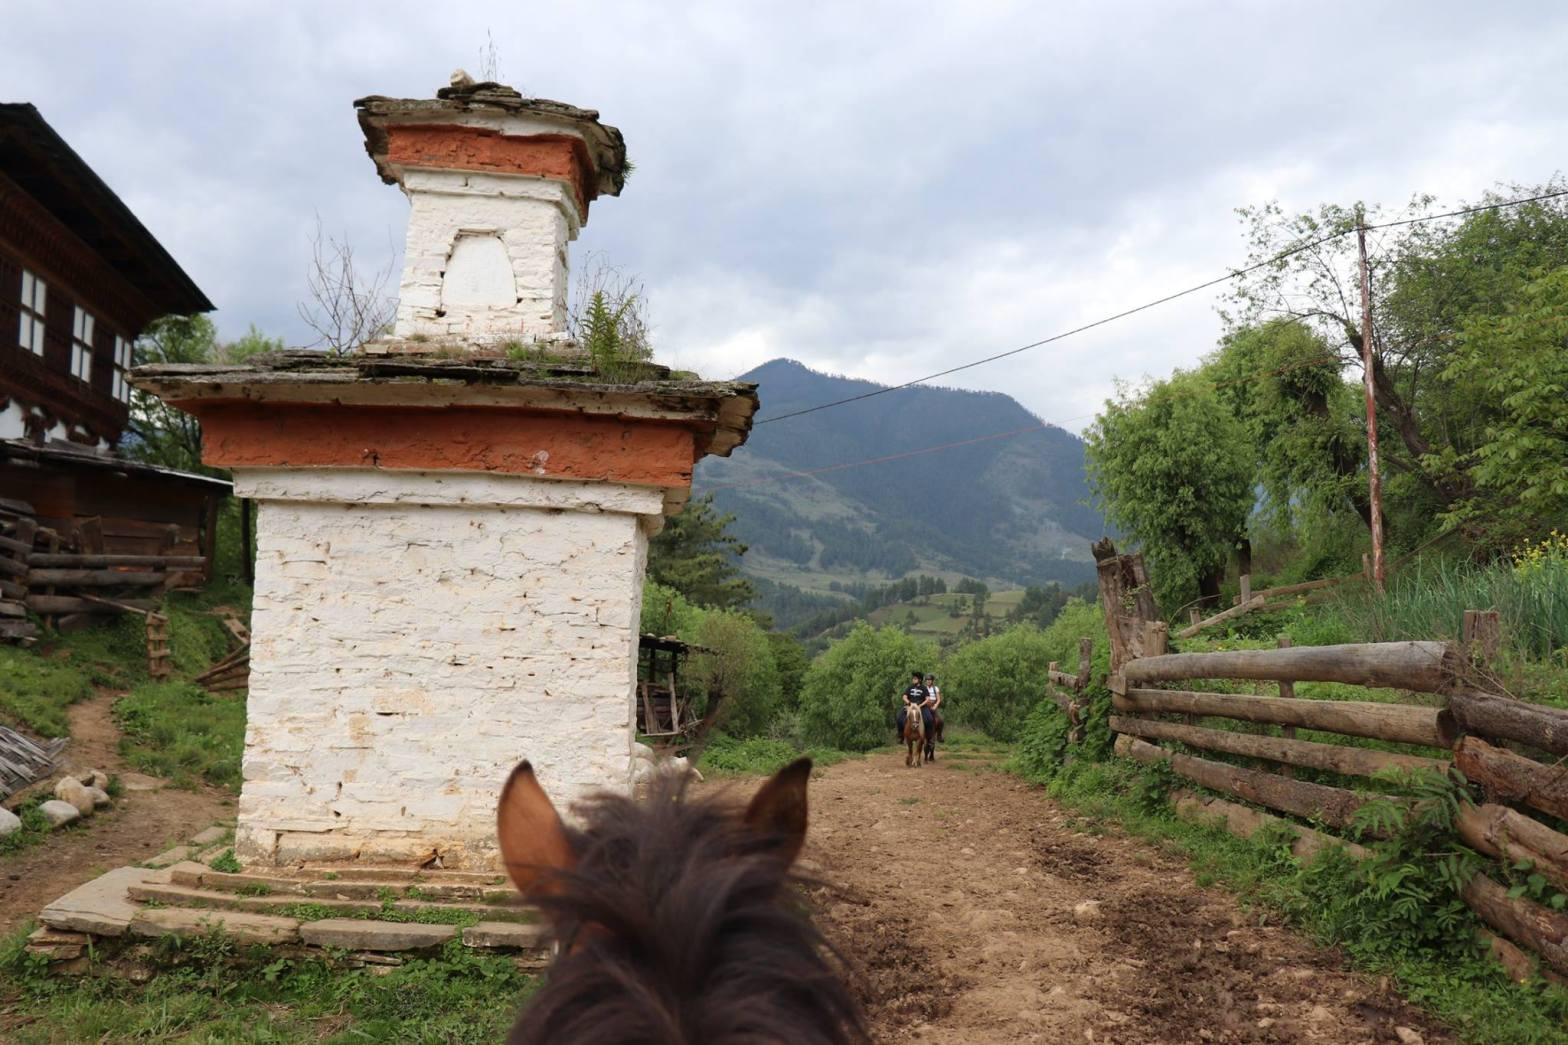 A stupa in the himalayan mountains seen while horse riding in Bhutan